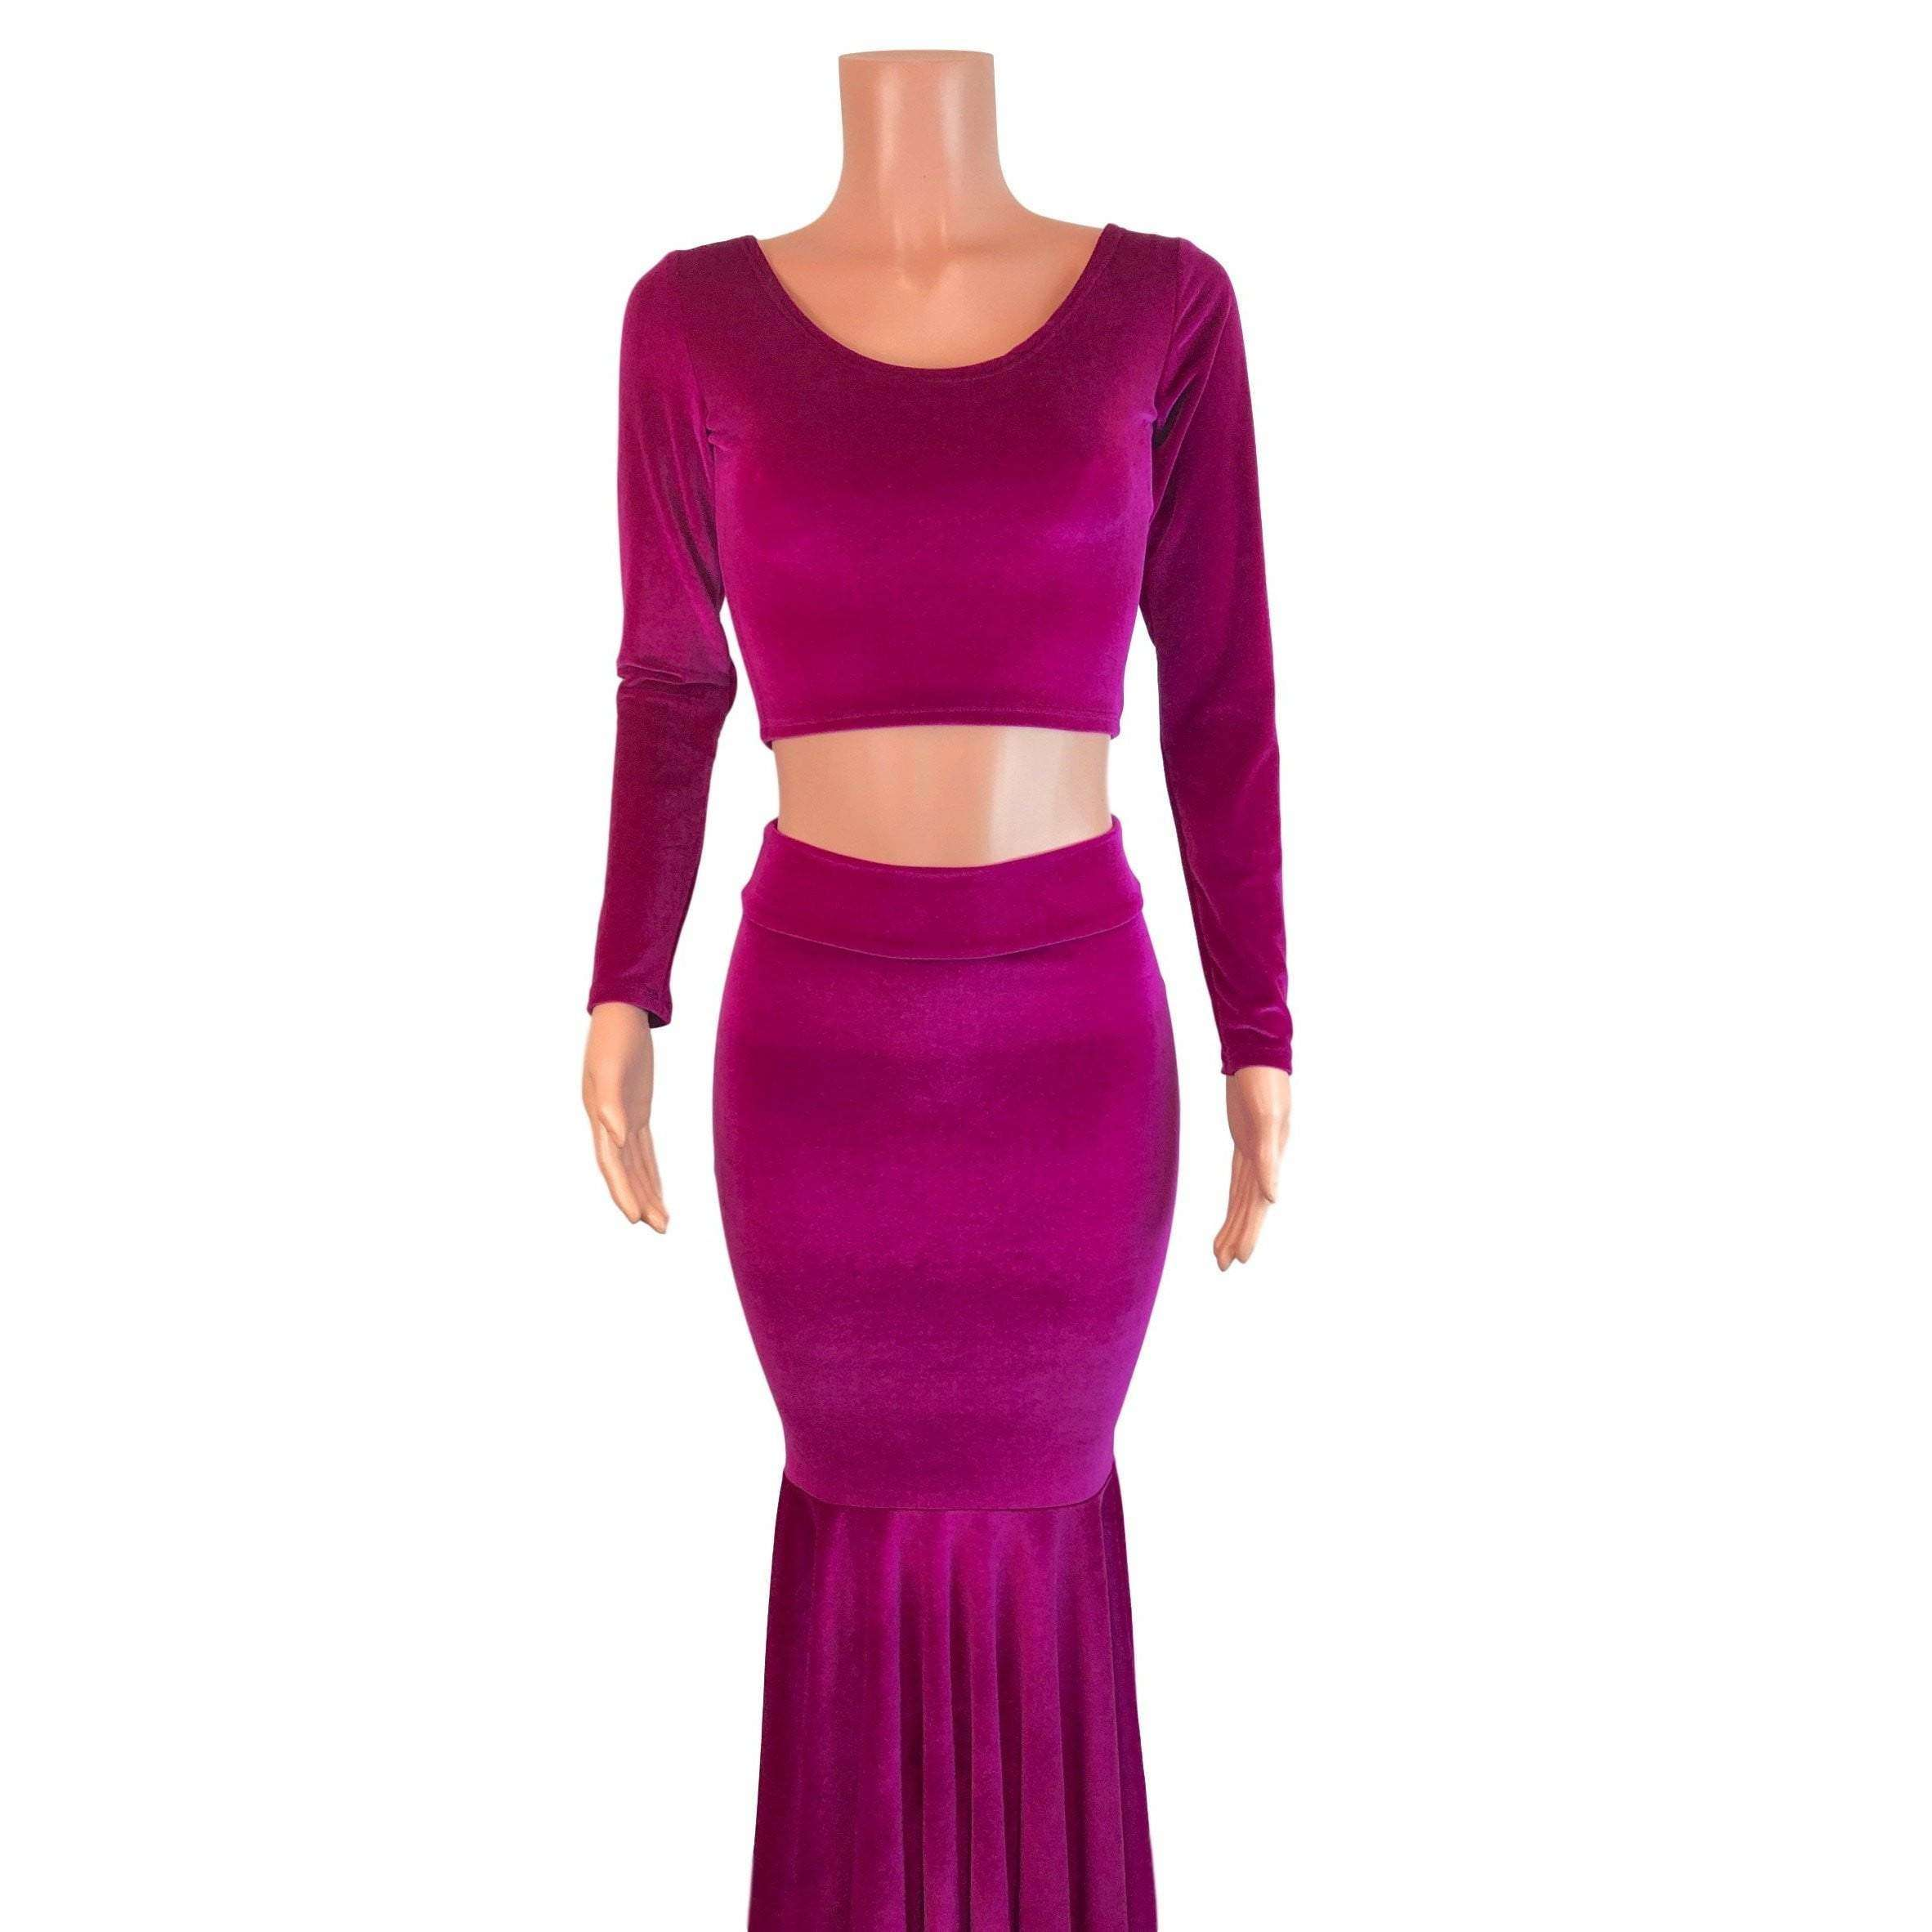 Fuchsia Pink Velvet Morticia Outfit Mermaid Long Fit N Flare Skirt A Peridot Clothing